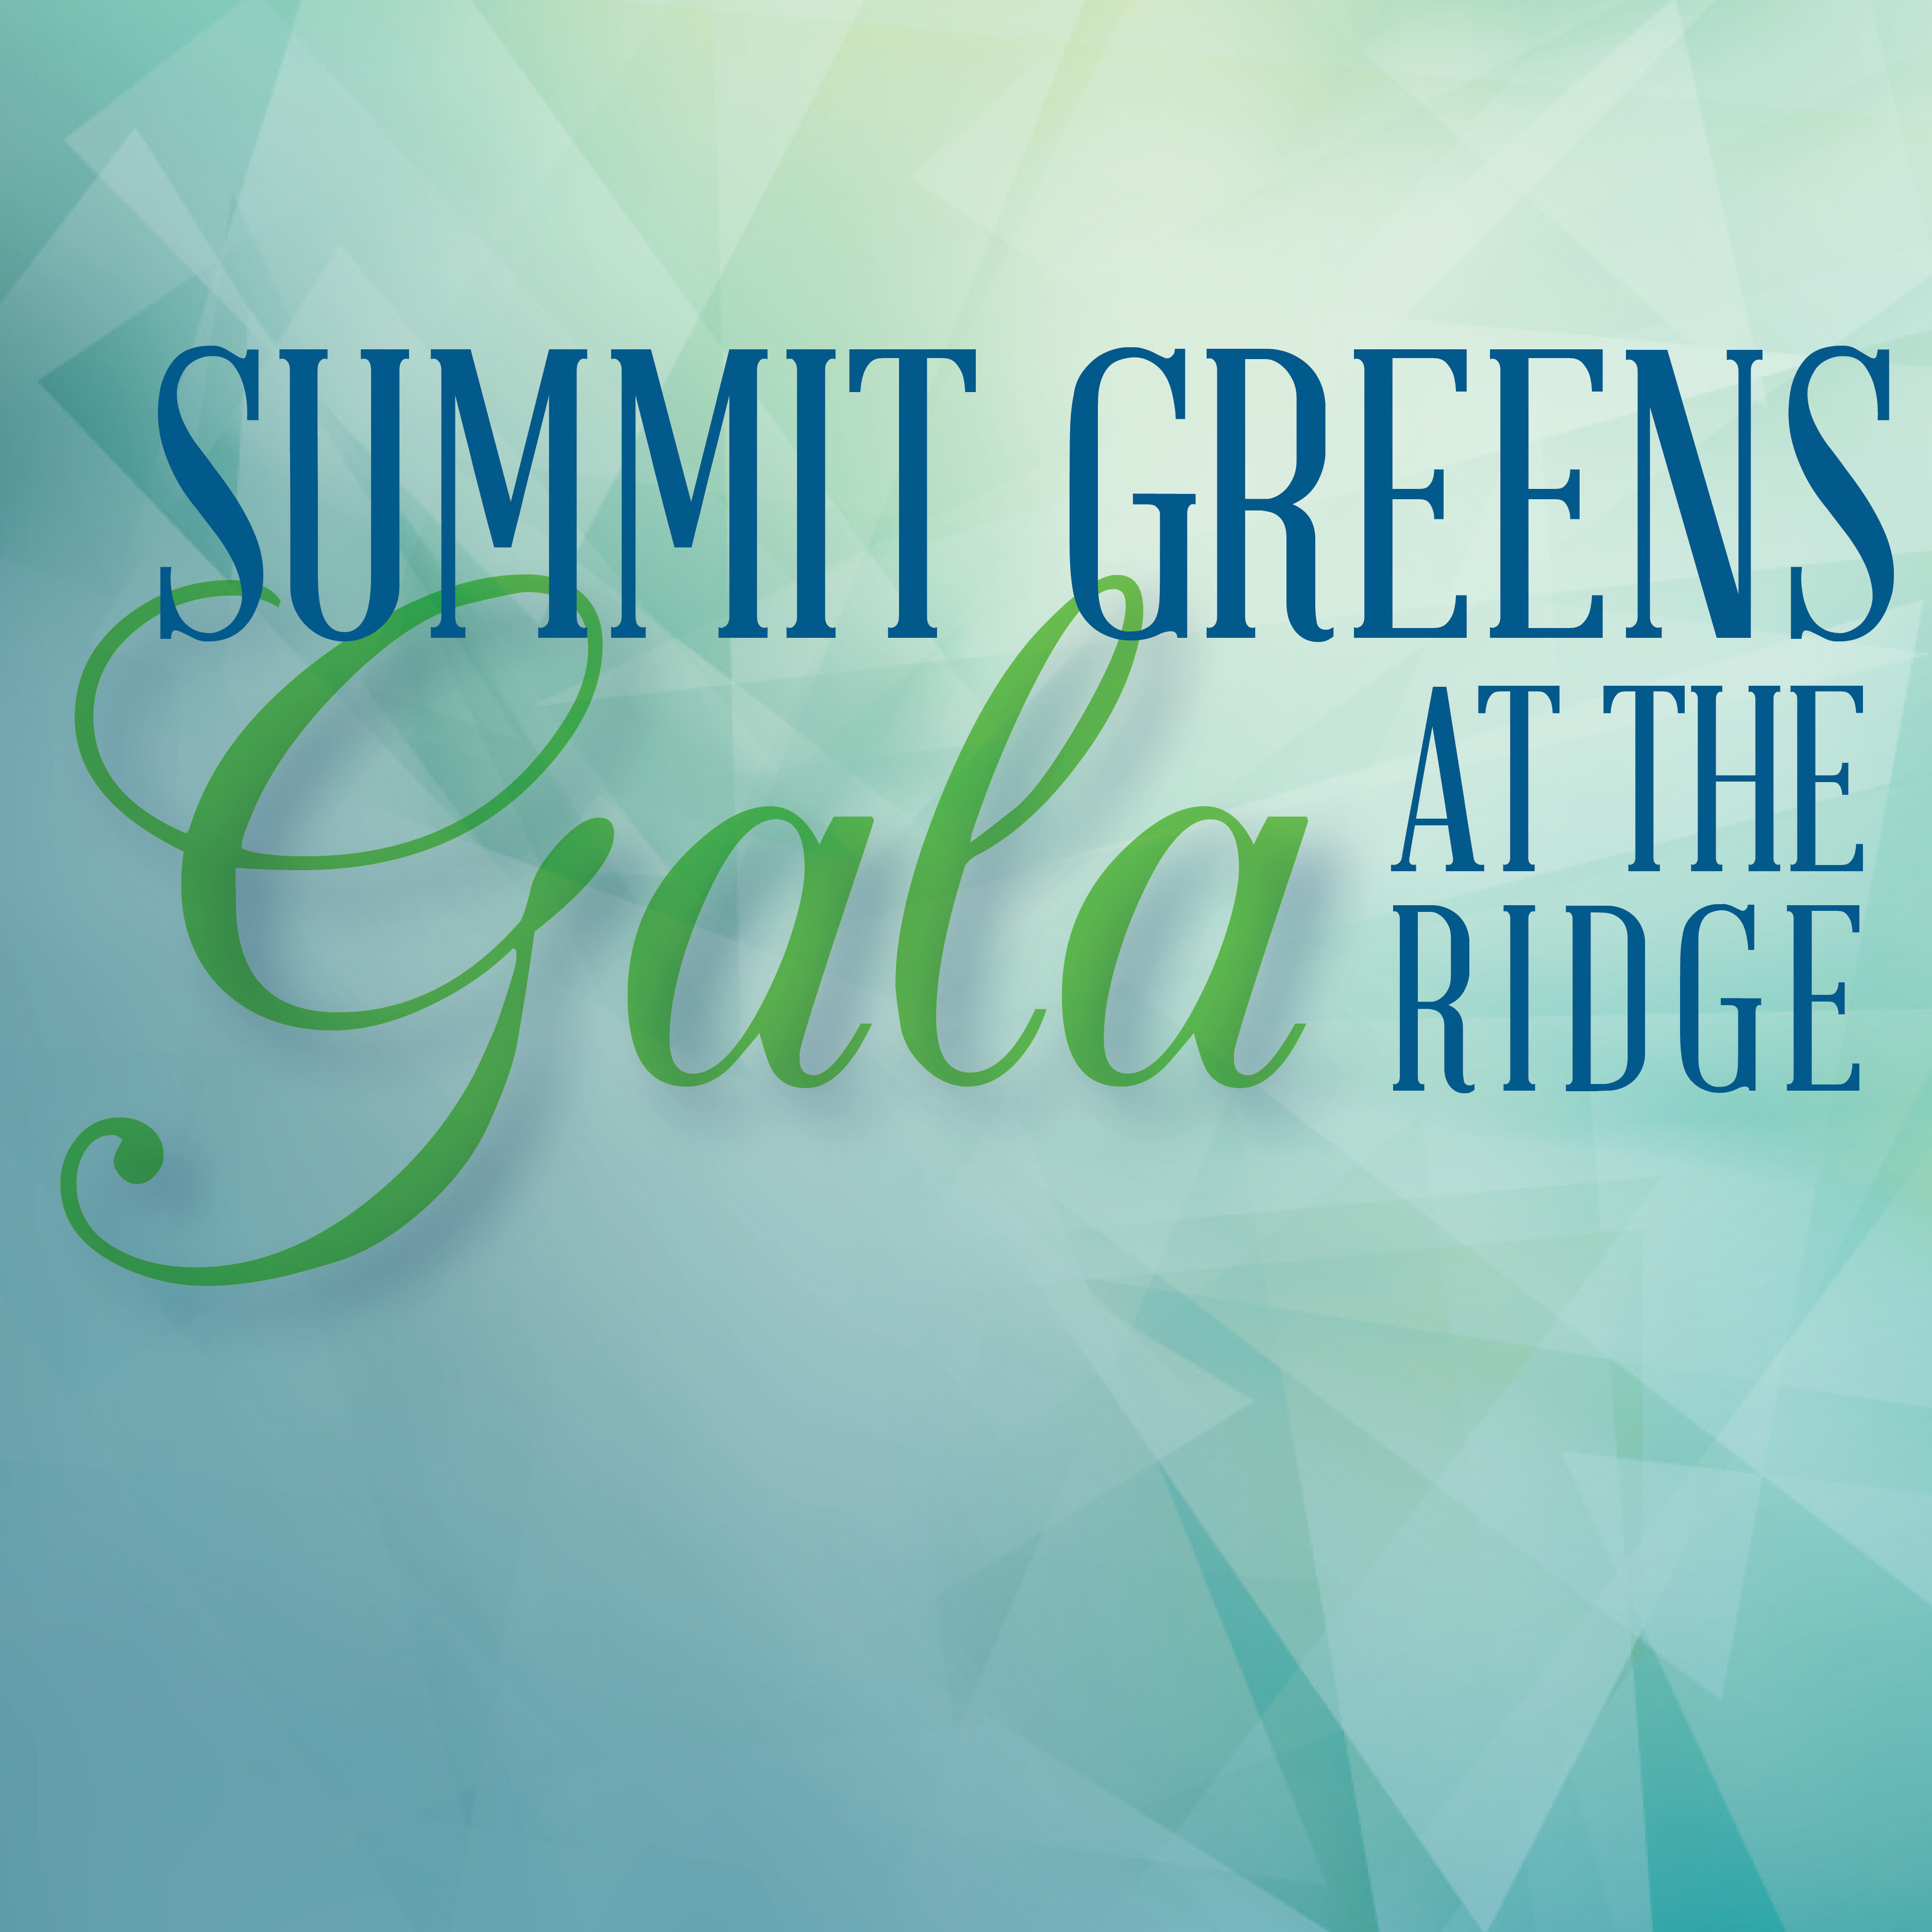 A gala event for Summit Greens residents at Sanctuary Ridge Golf Club in Clermont, FL